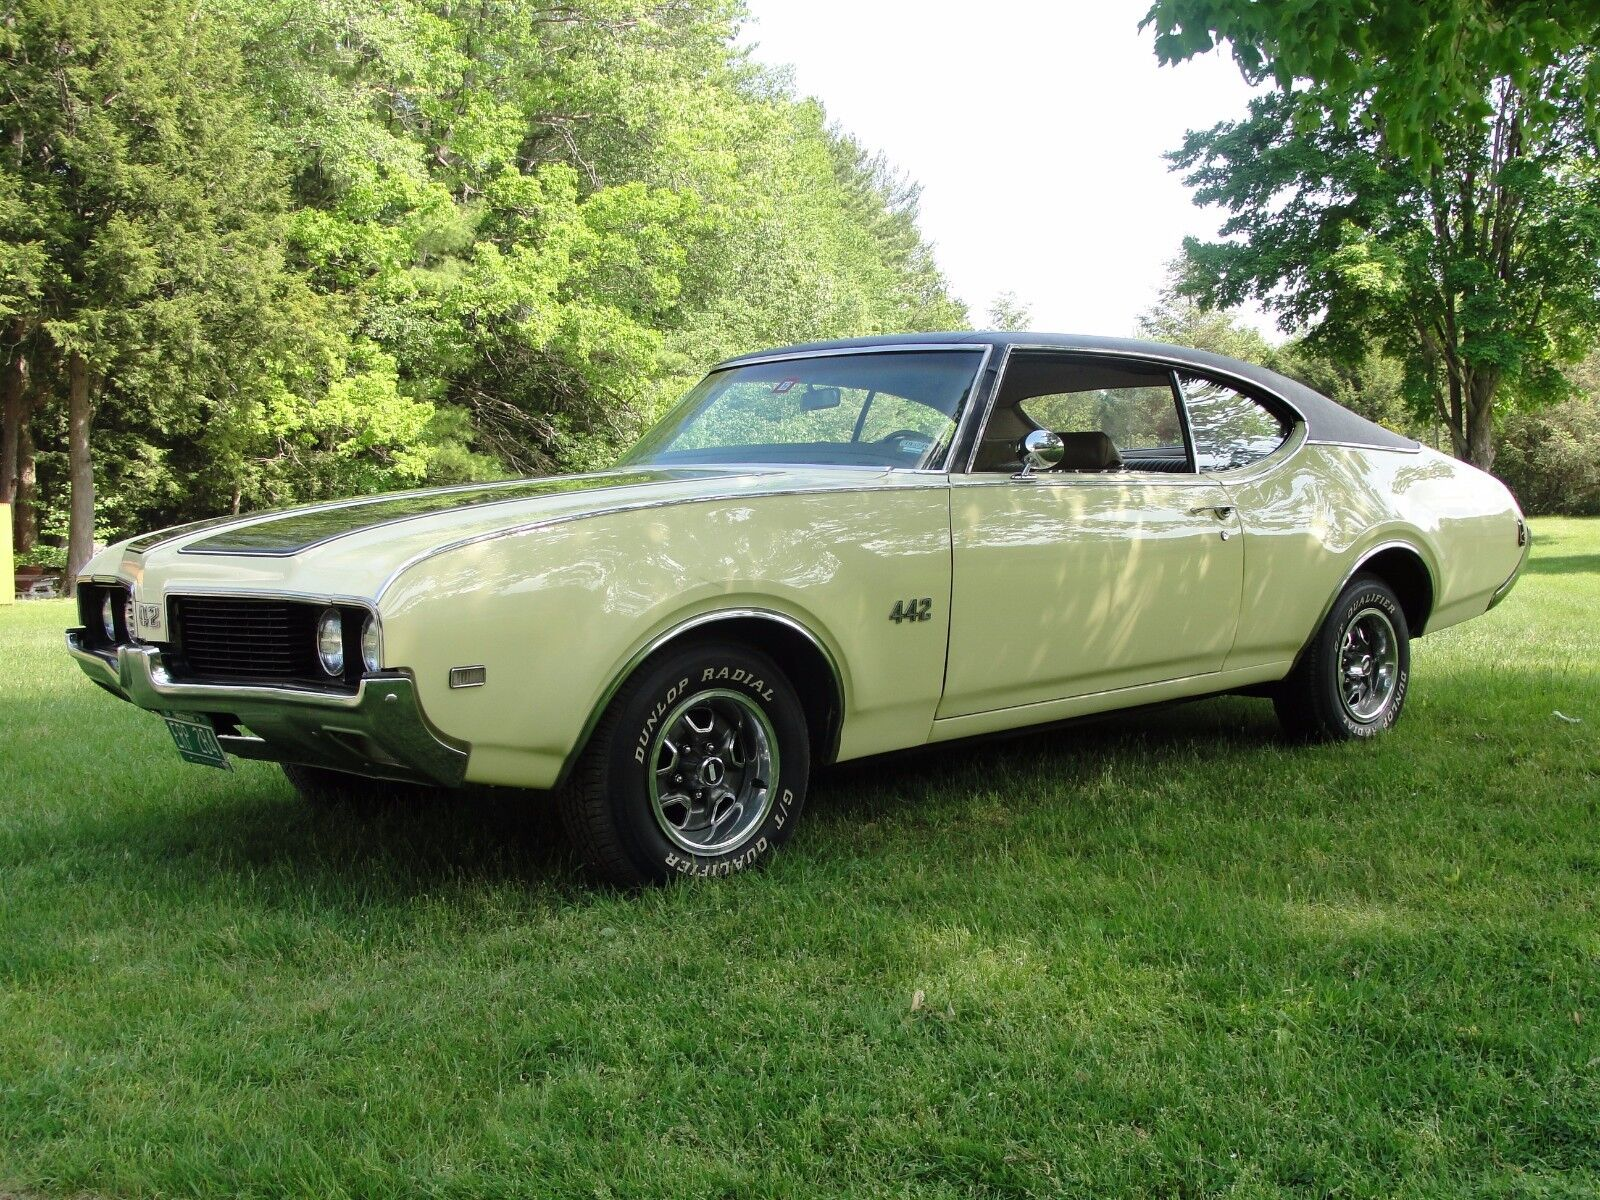 1969 Oldsmobile 442 Holiday Coup Restored! 1969 Oldsmobile 442, 2-door Holiday Coupe, Canada Built, Matching Numbers